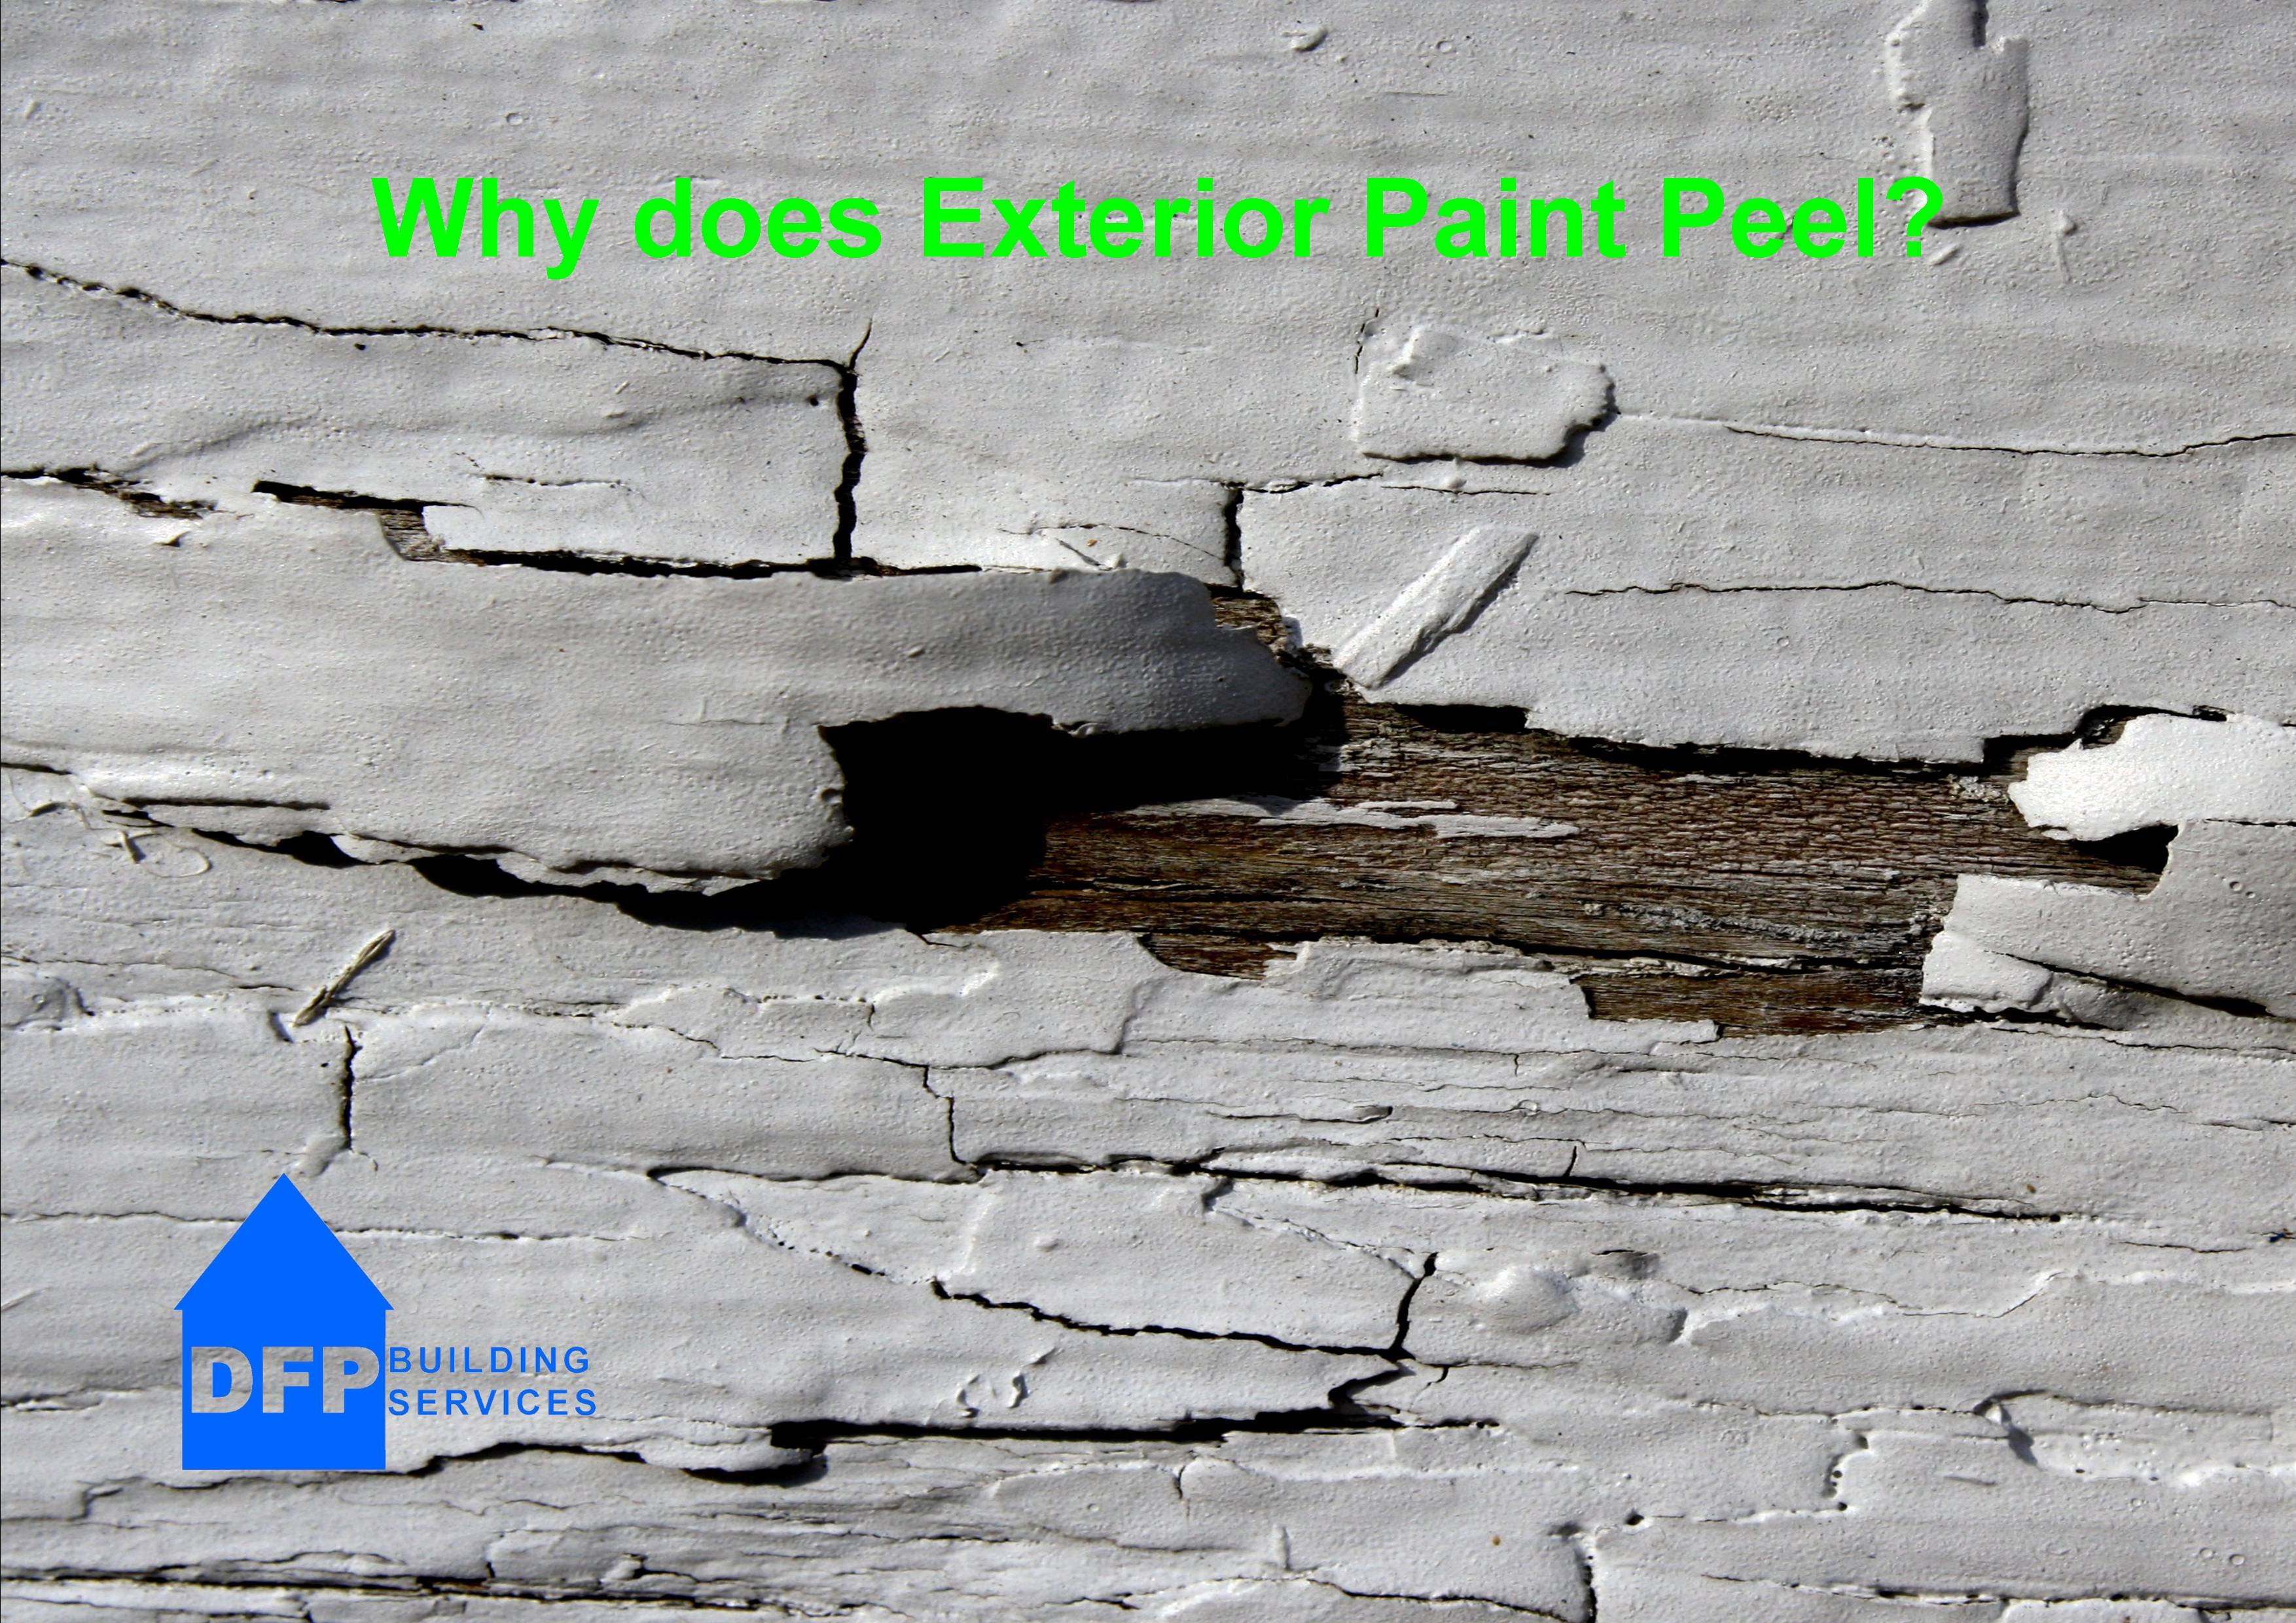 why does exterior paint peel?